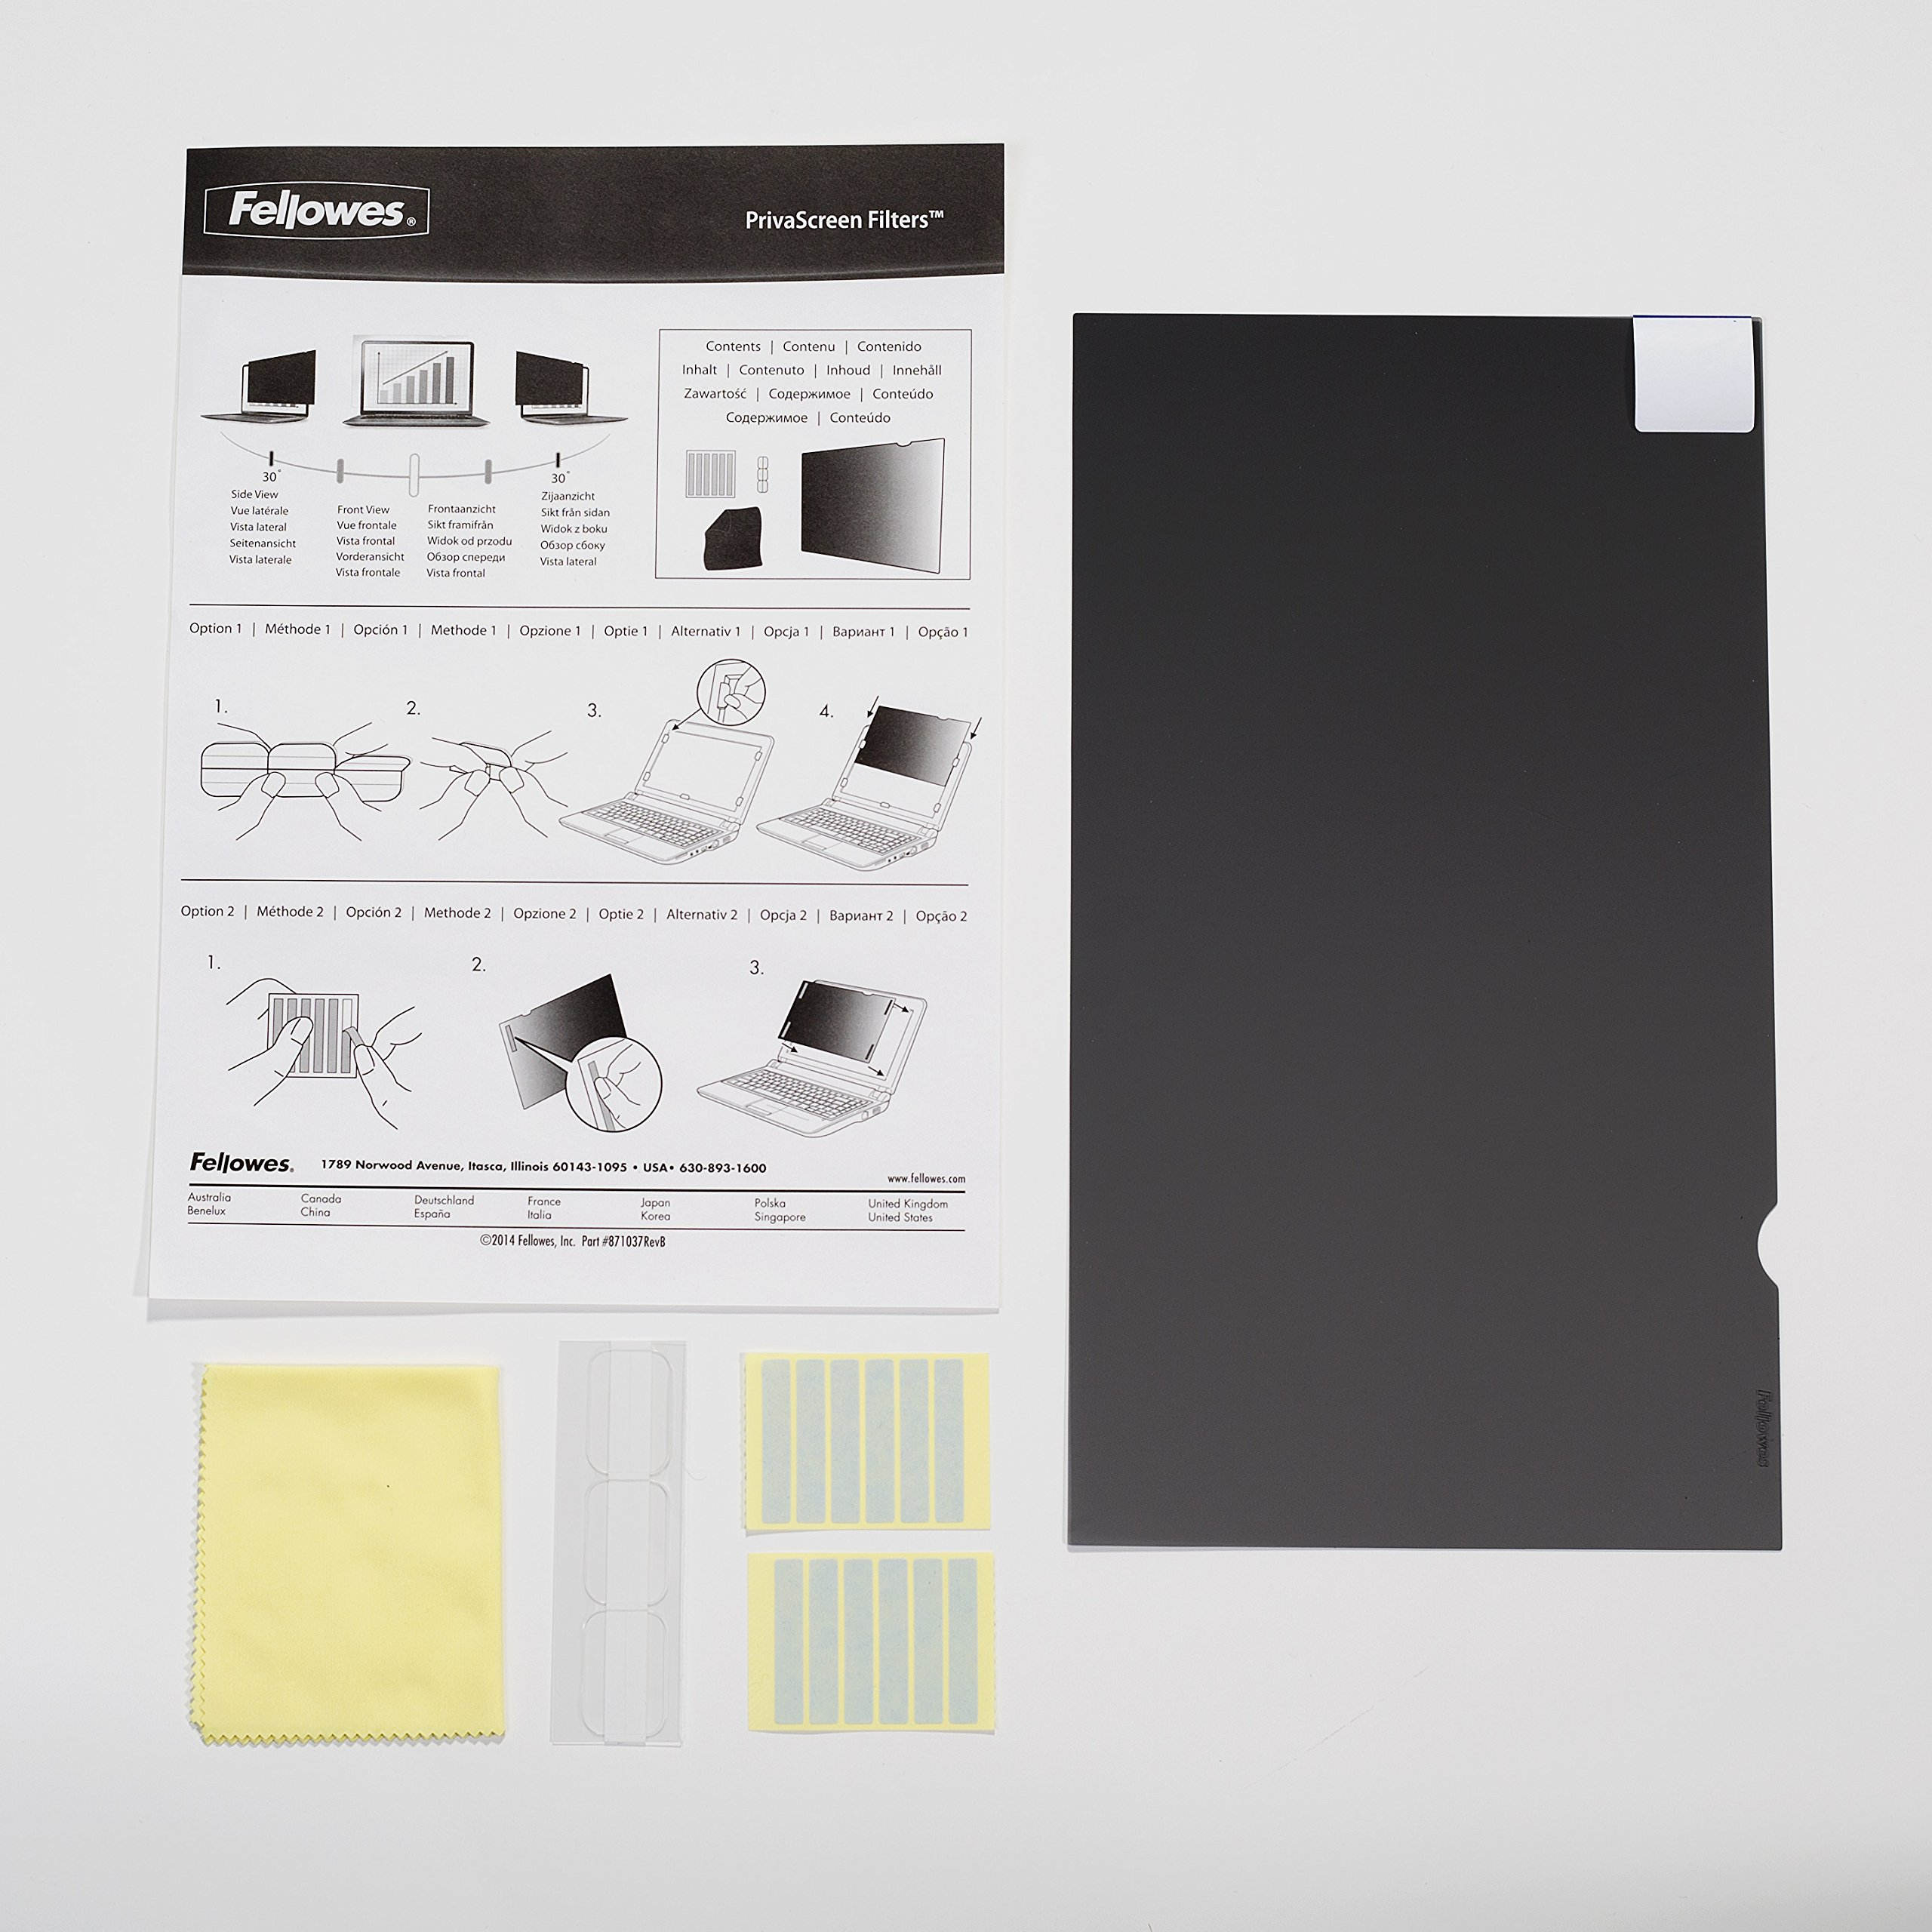 Fellowes PrivaScreen Privacy Filter for 14.1 Inch Widescreen Laptops 16:9 (4815701)